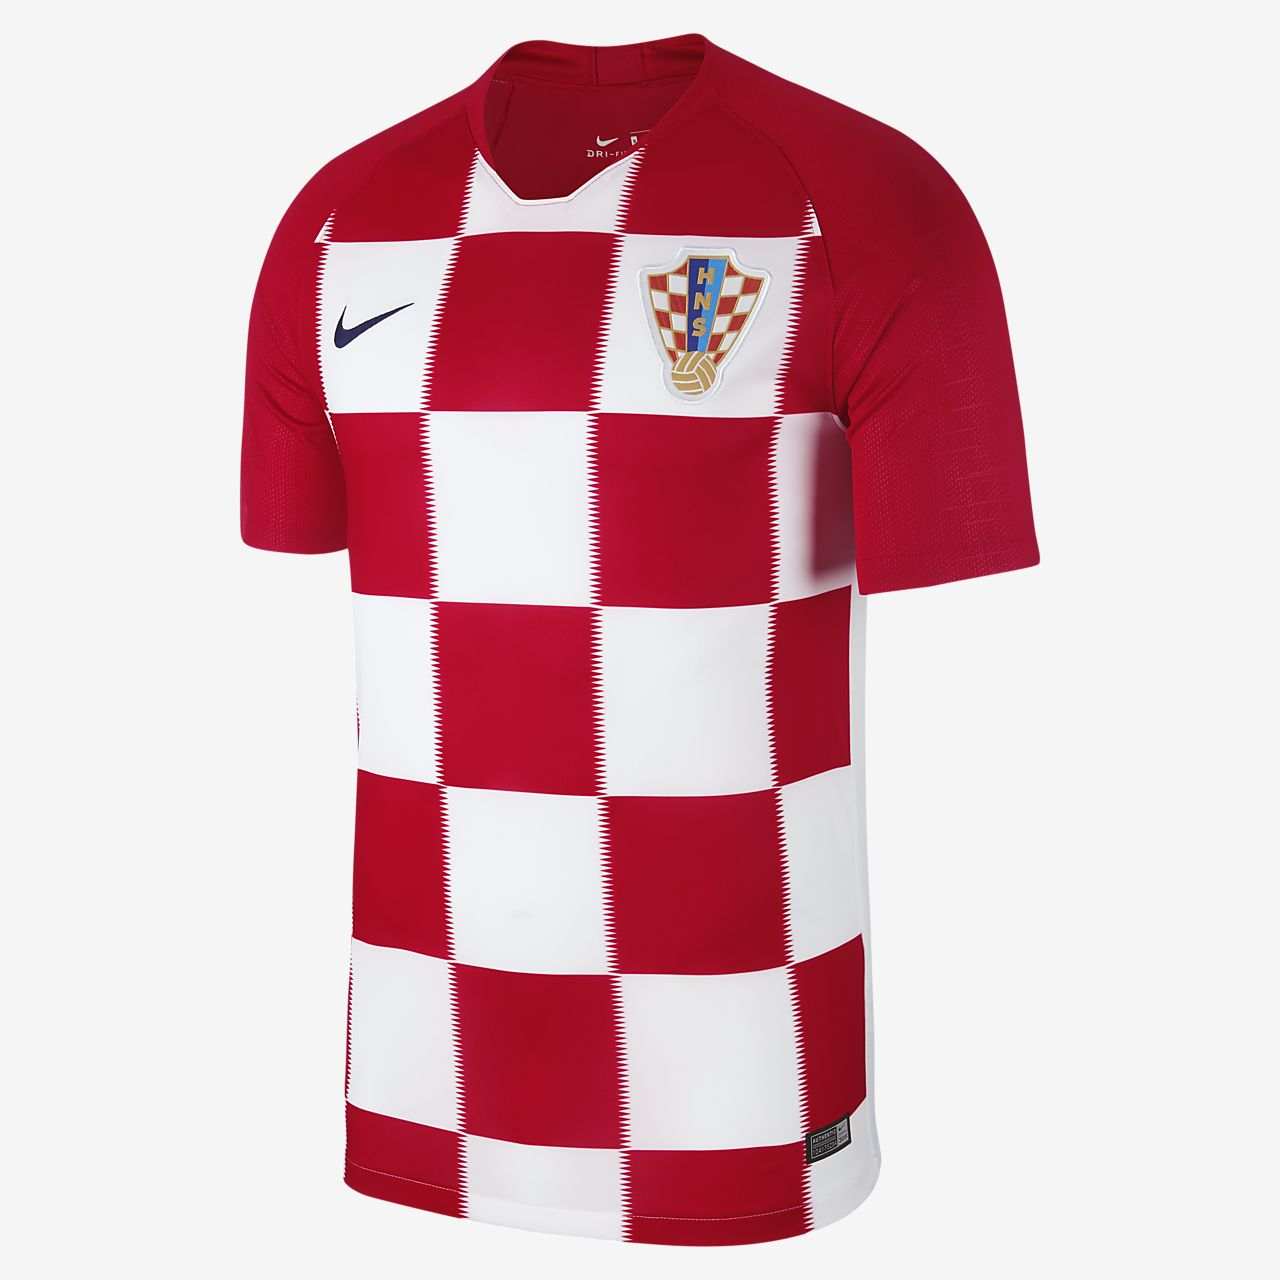 f43b3a7ab43 2018 Croatia Stadium Home Men's Football Shirt. Nike.com AU